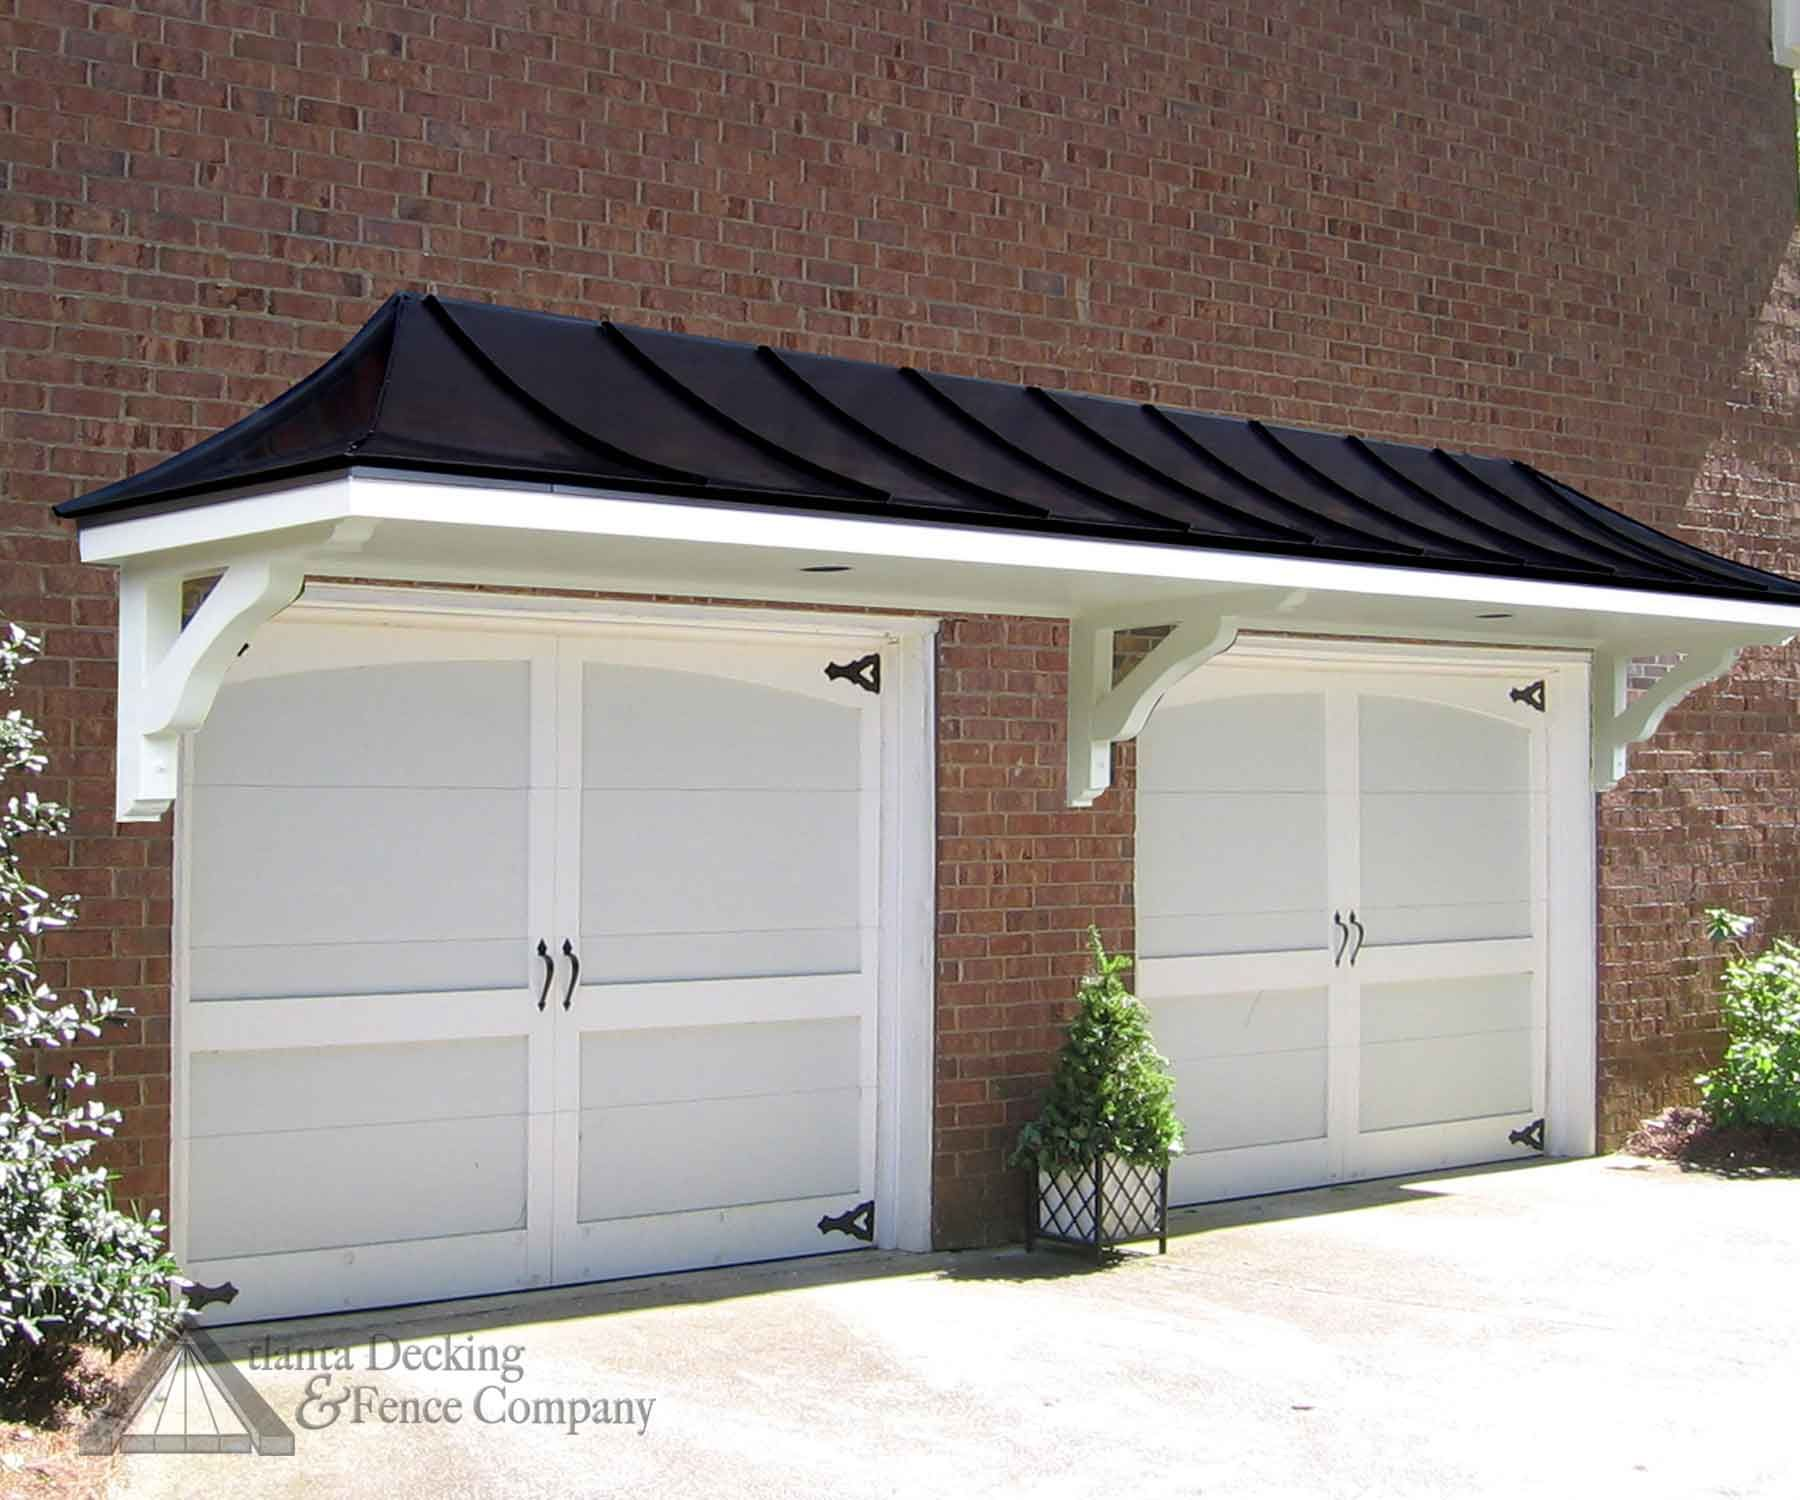 Garage Door Repair Jackson Mi Hip Roof Pergola Over Garage Doors From Atlanta Decking And Fence